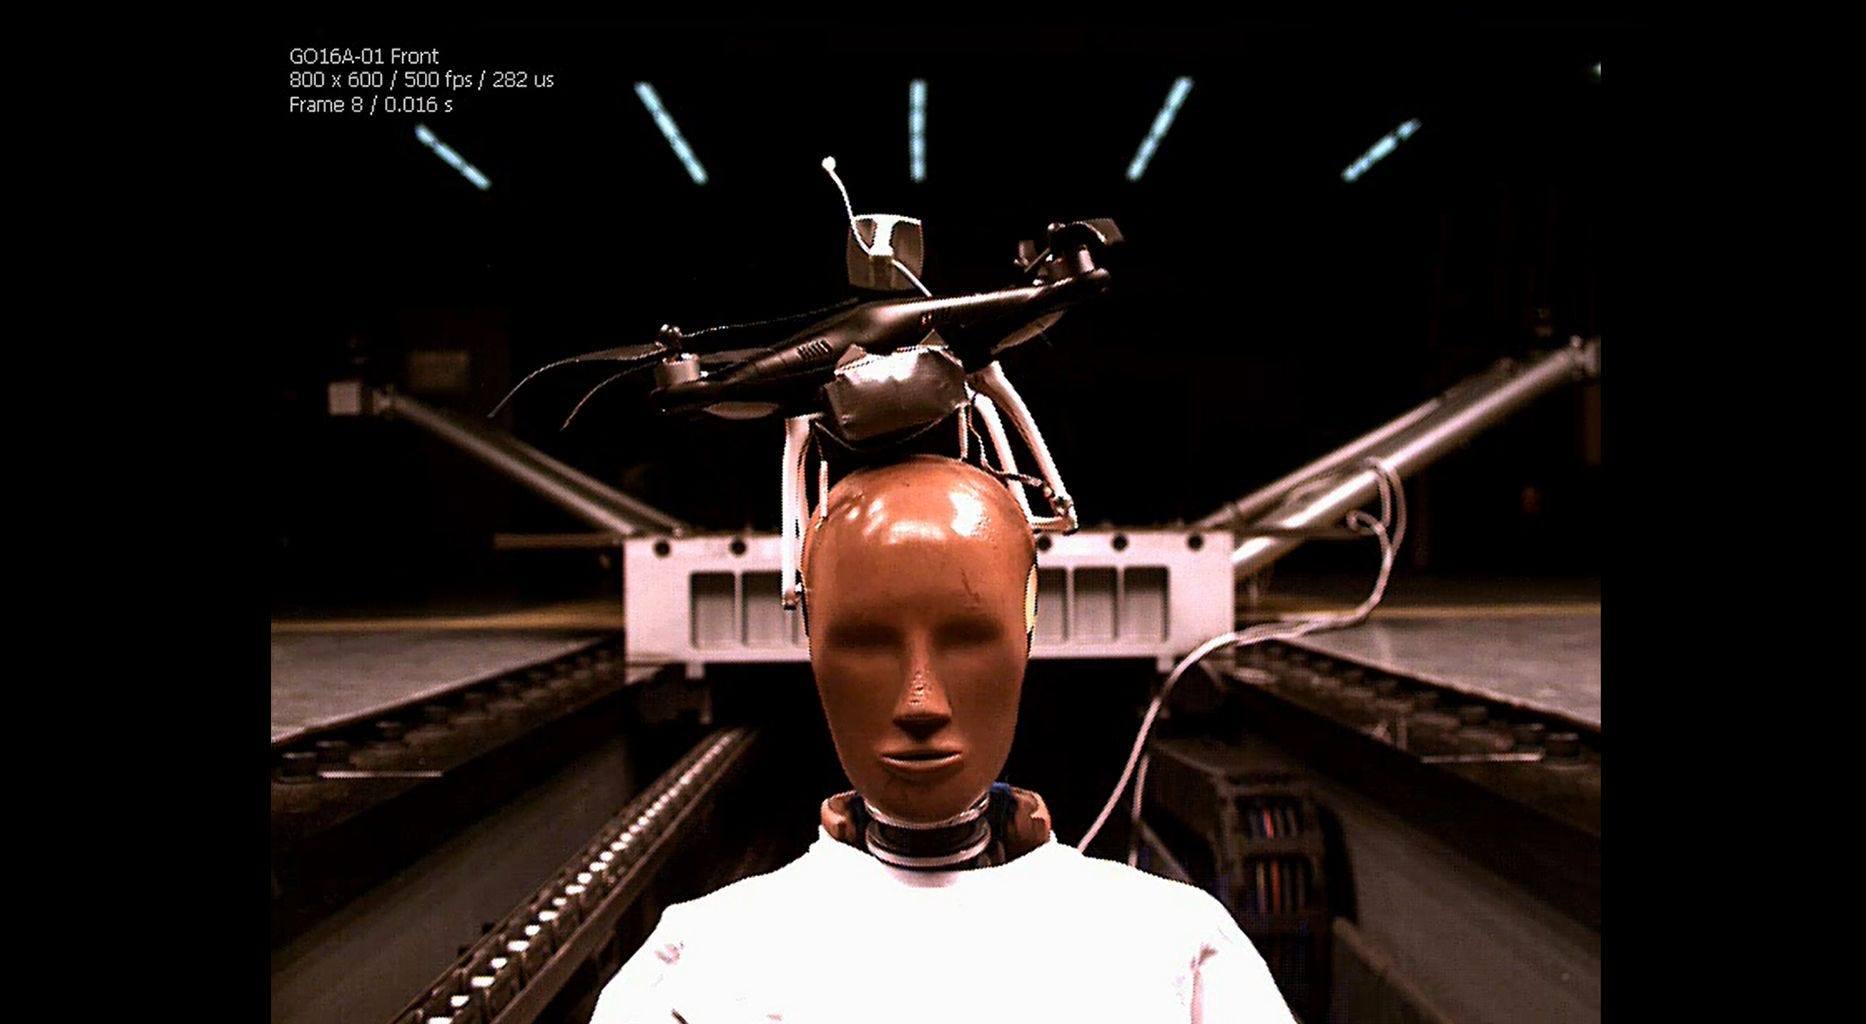 What happens if a drone hits you in the head?